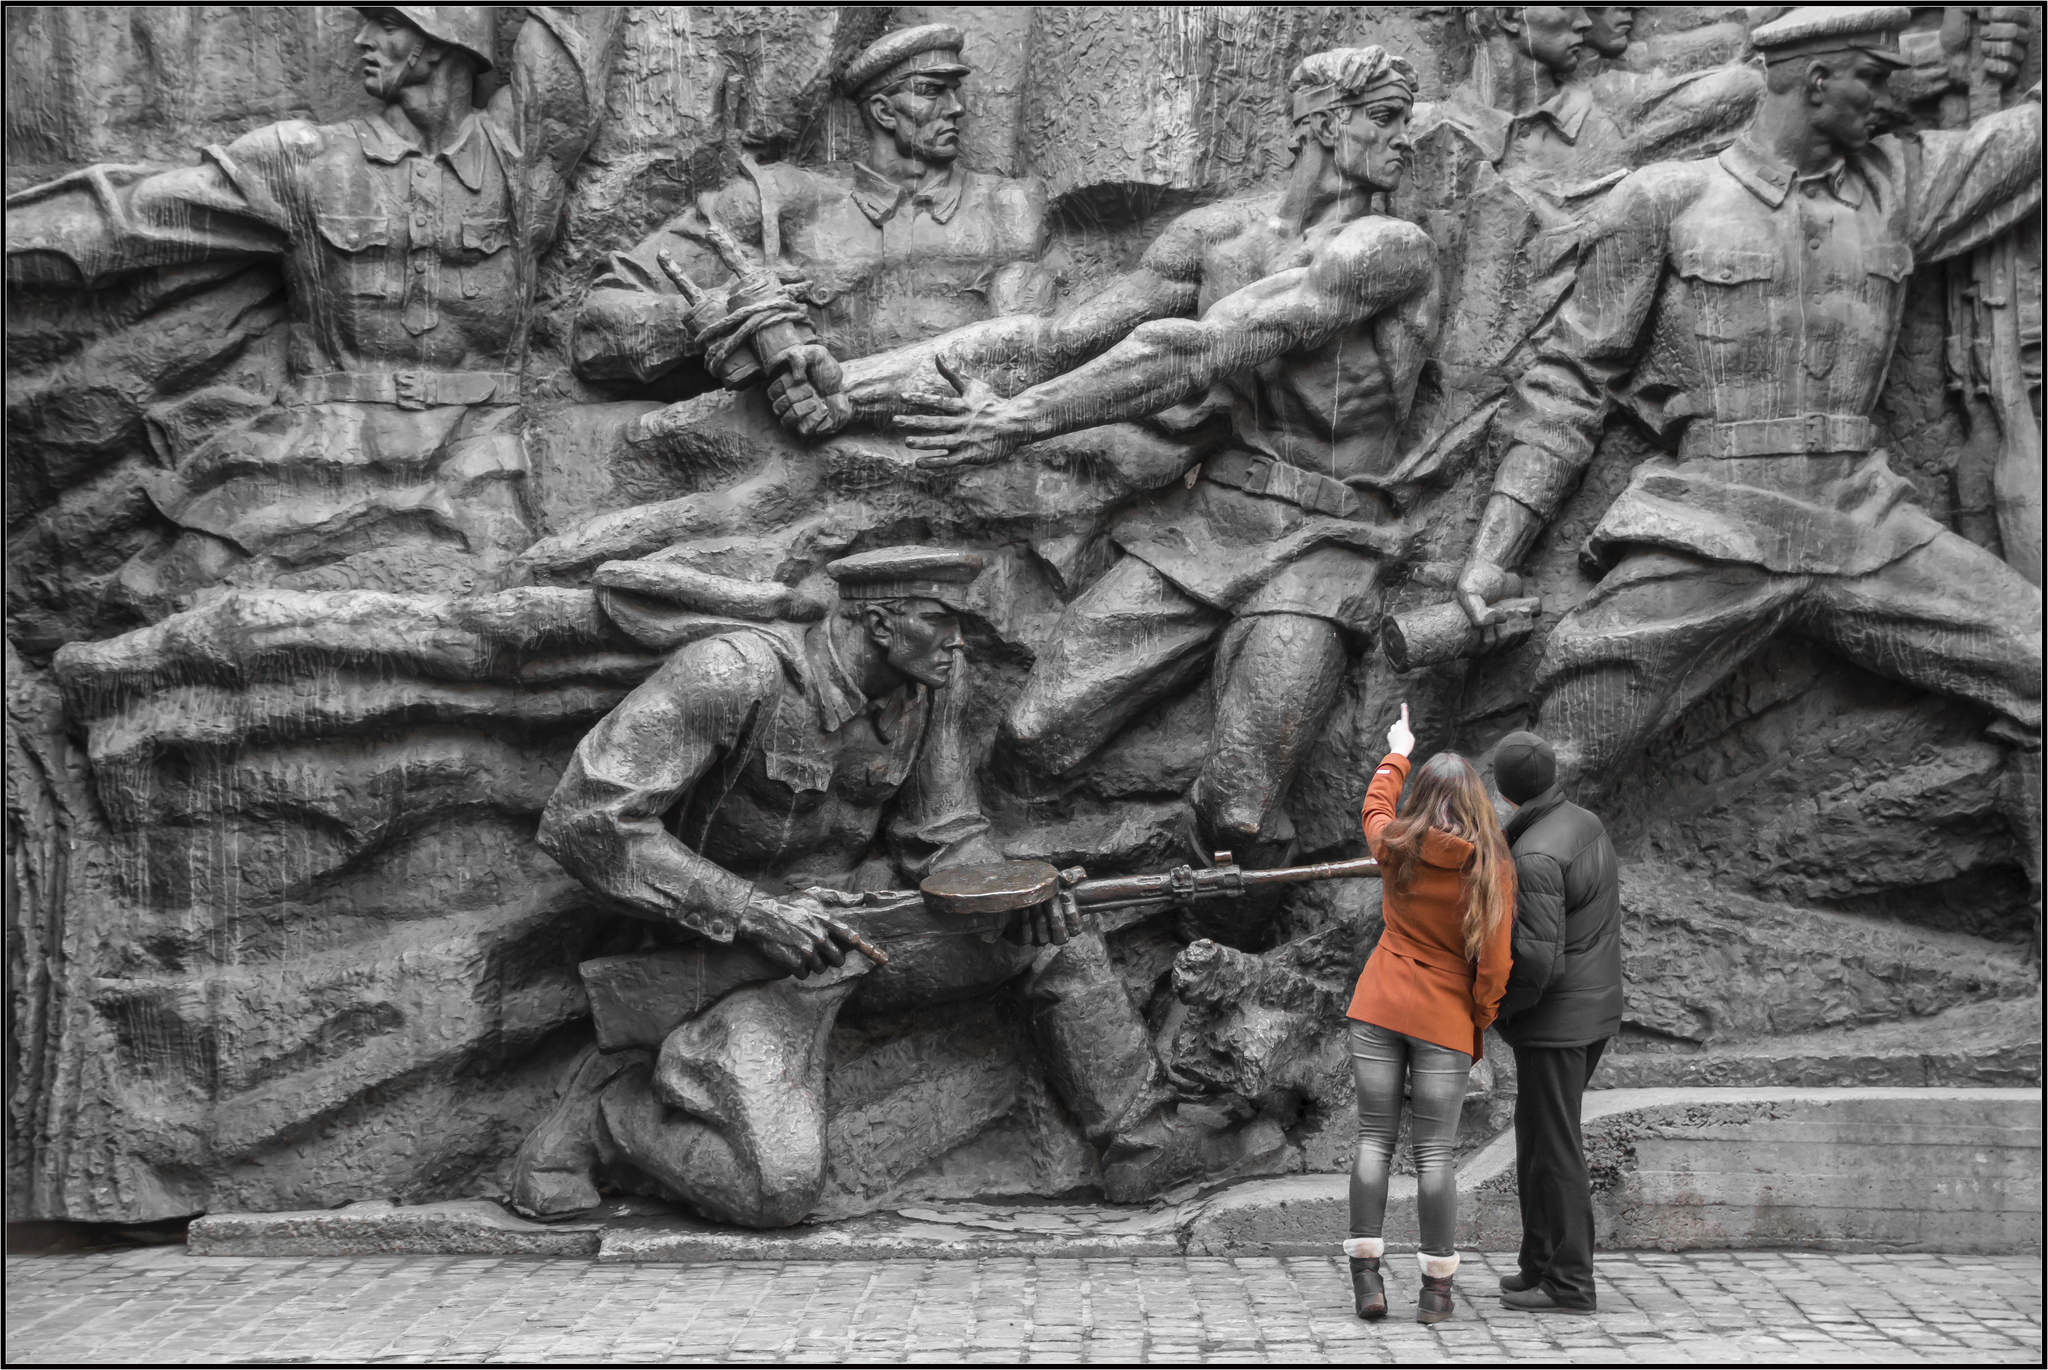 National Museum of the History of the Great Patriotic War (1941-1945). Image Credit: Bert Kaufmann